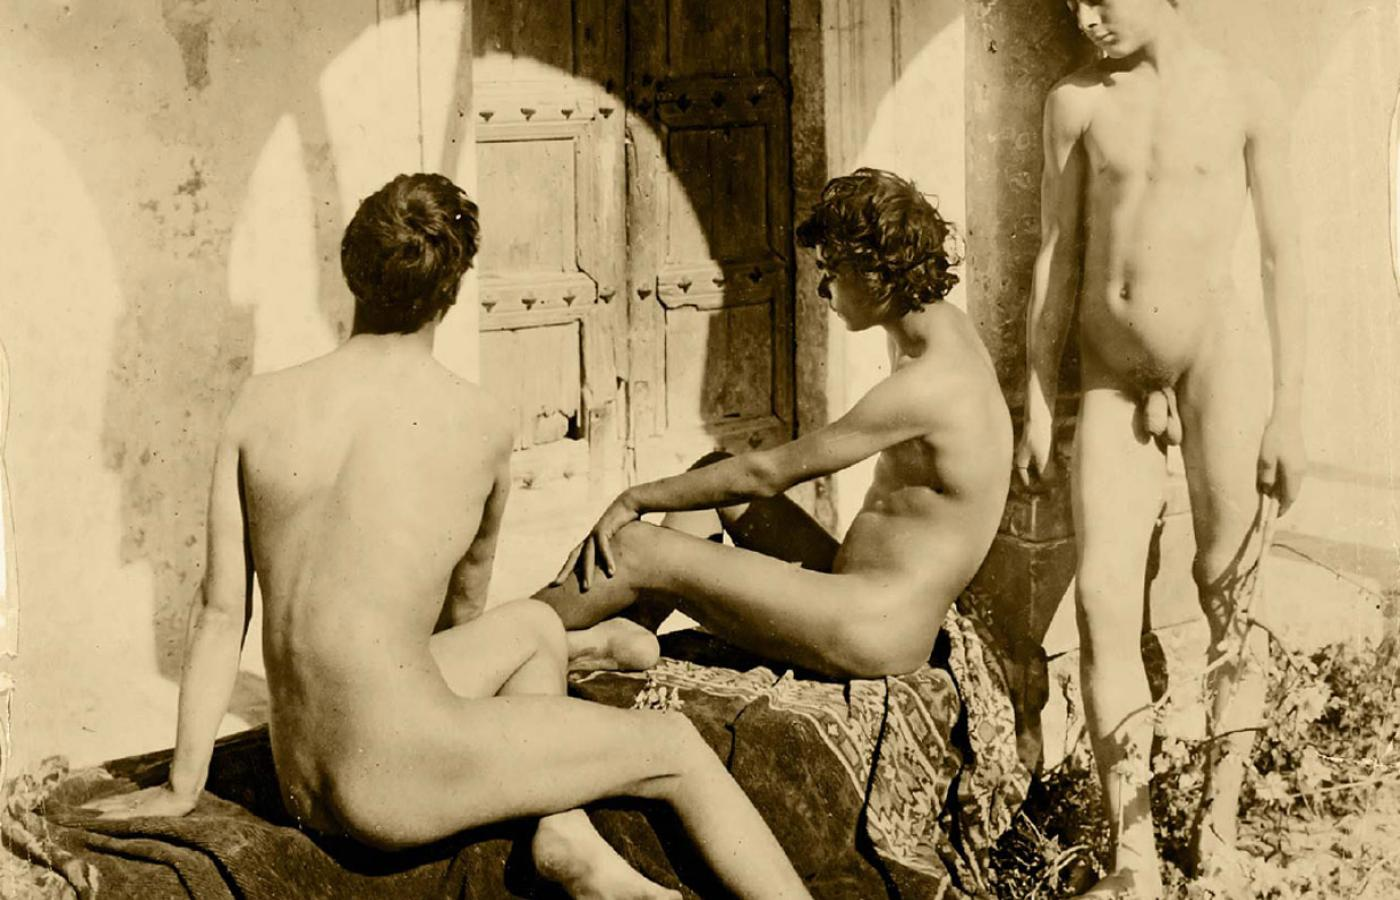 Nudist art boys and girls